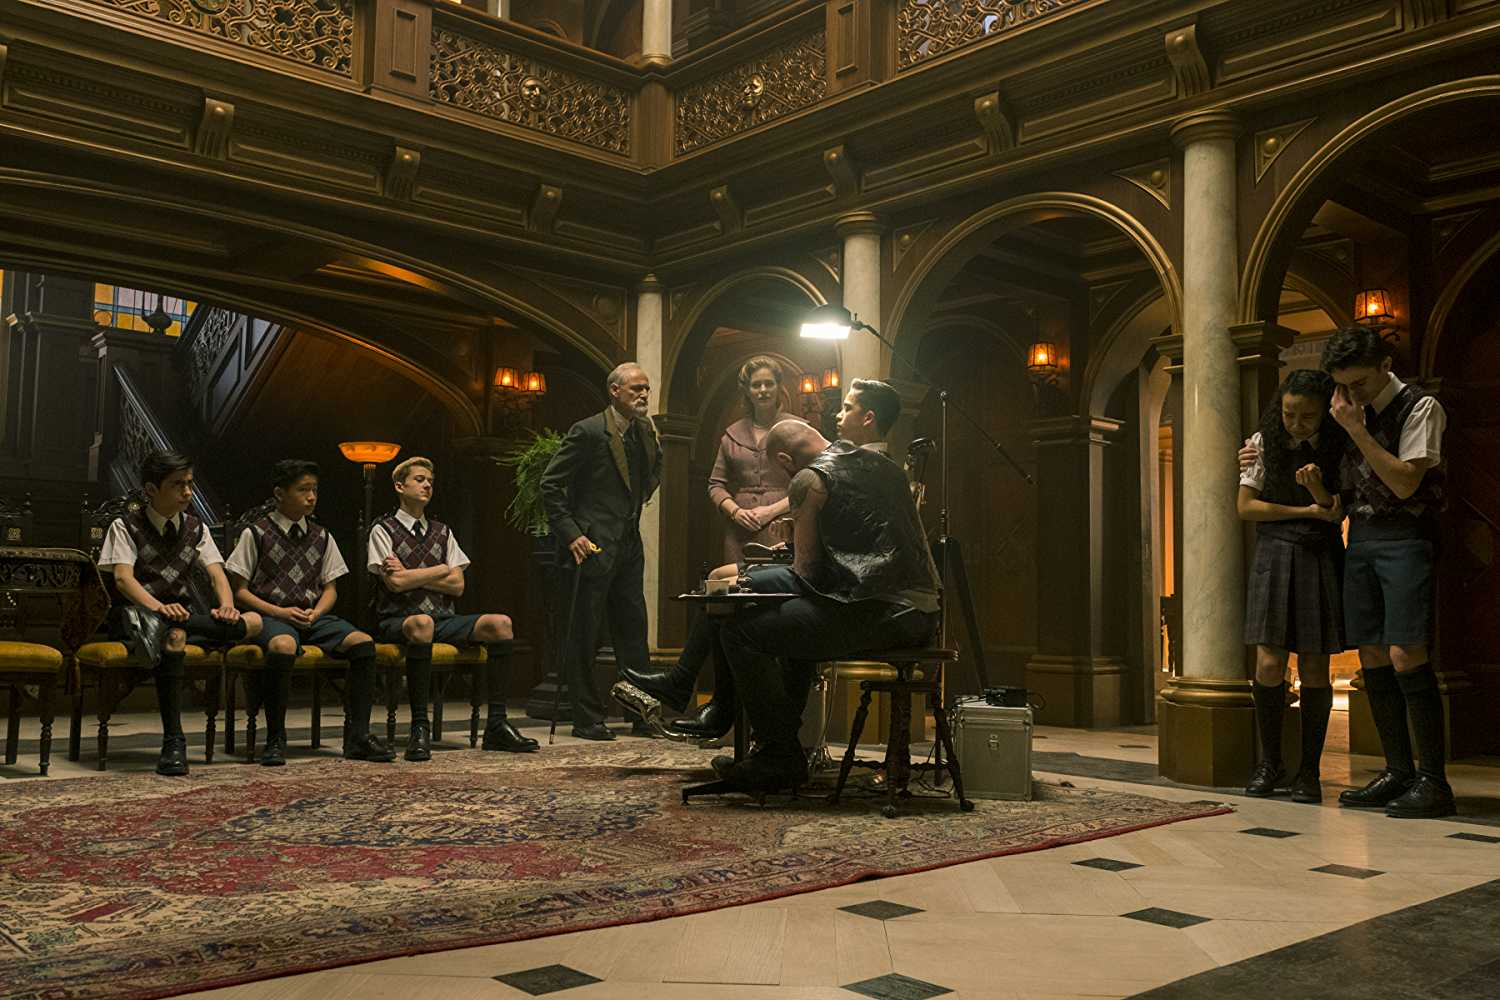 Sir Reginald Hargreeves giving the children tattoos of the family's insignia, in 'The Umbrella Academy'. (Source: IMDB)